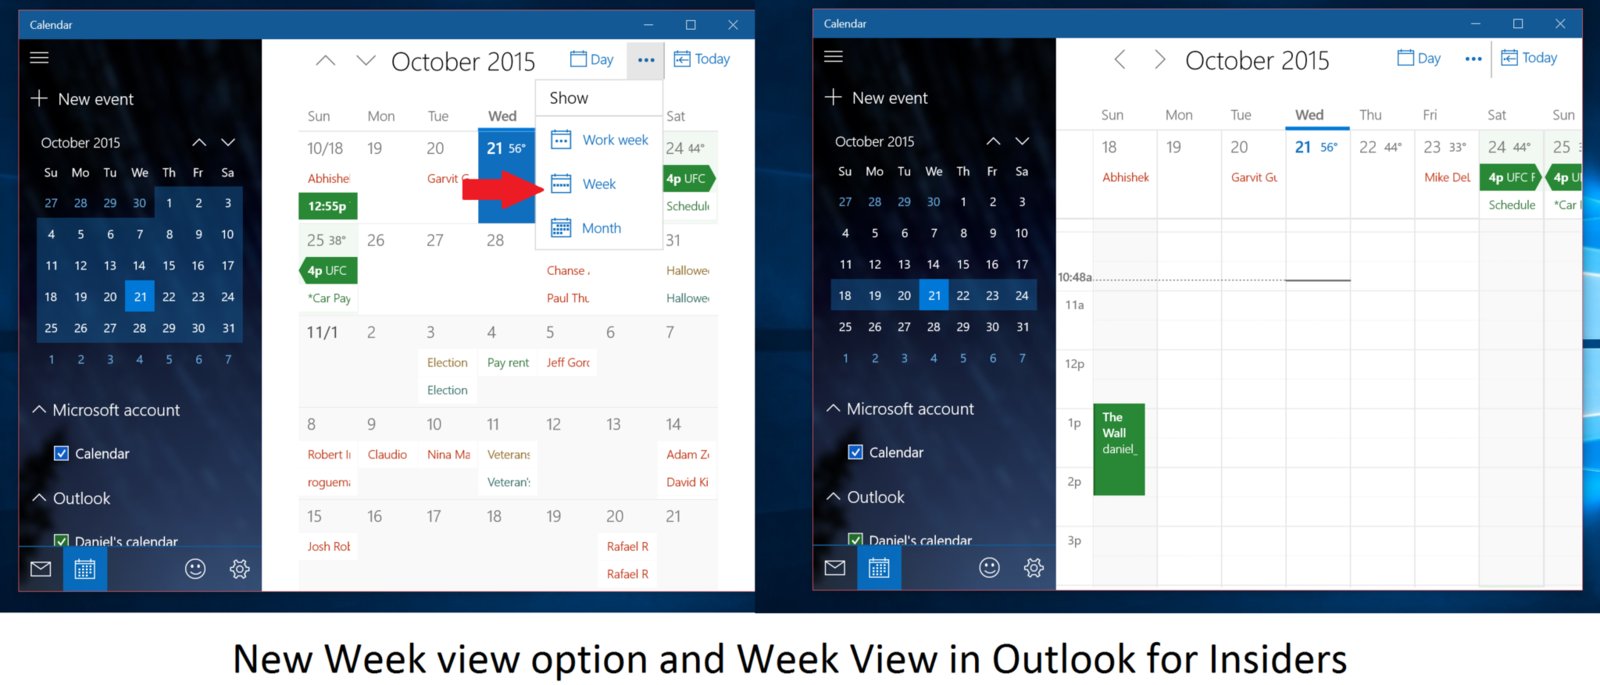 Outlook Mail and Calendar app for Windows 10 PC and Mobile updated